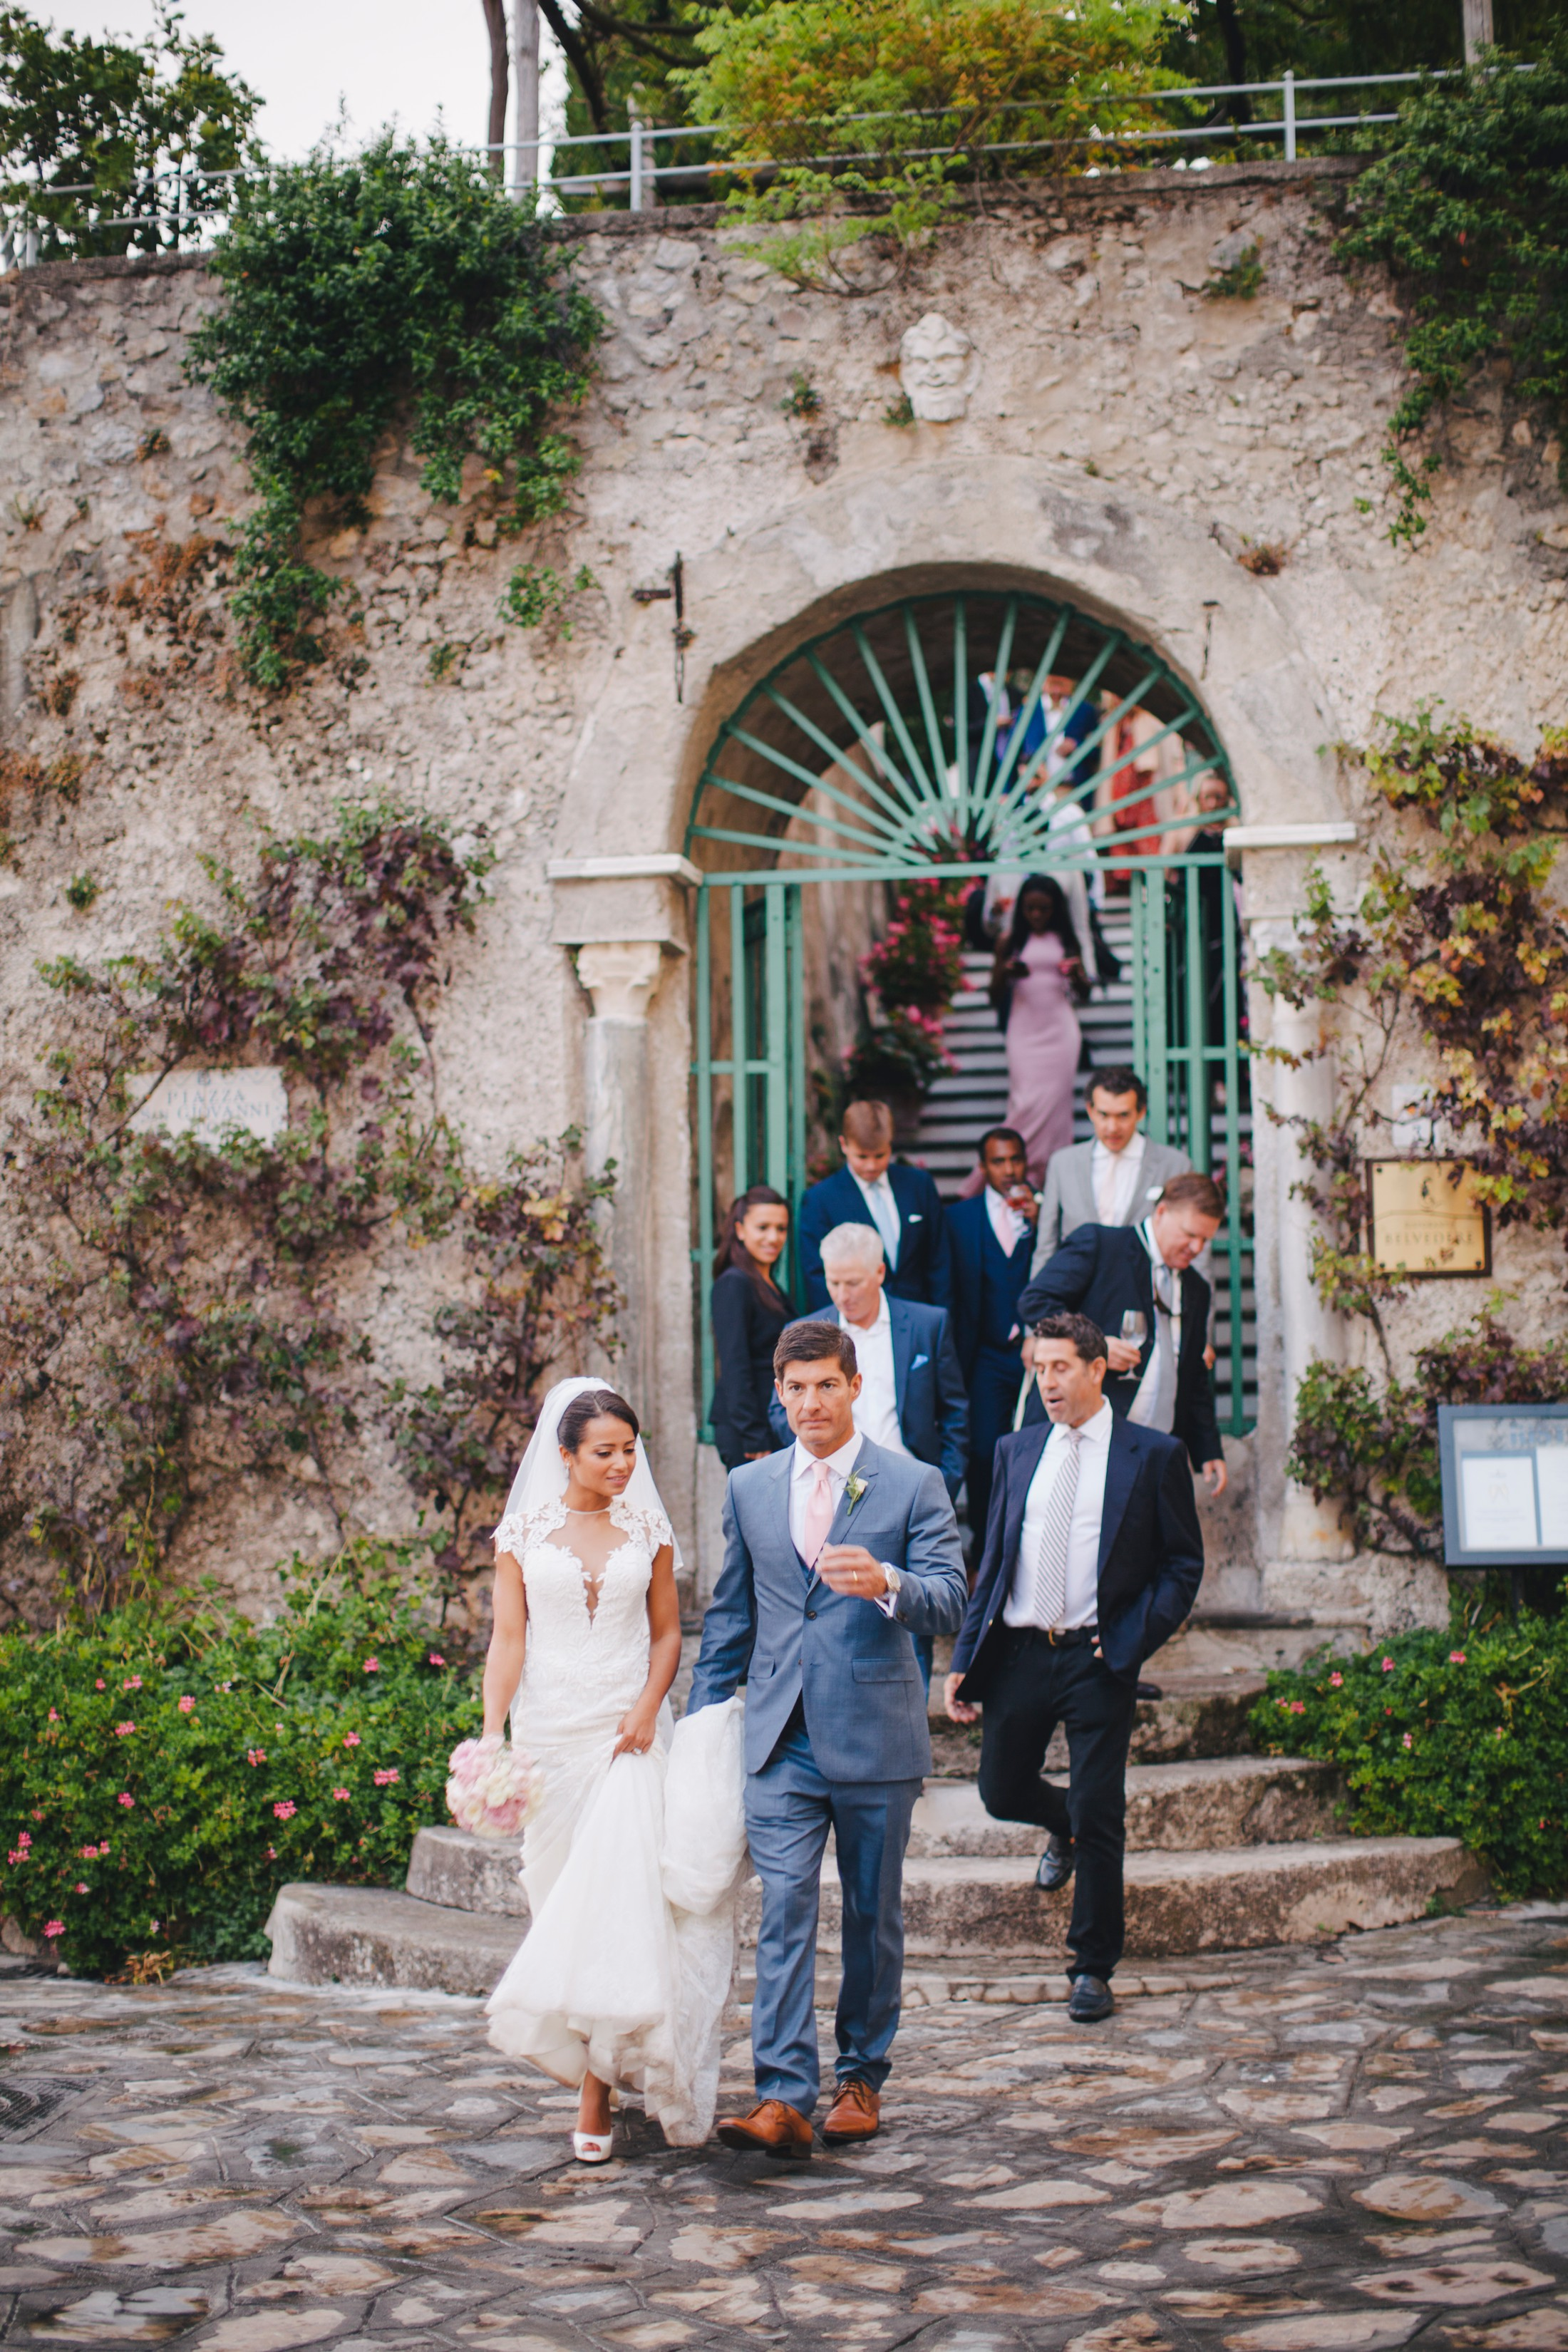 bride and groom followed by their wedding guests